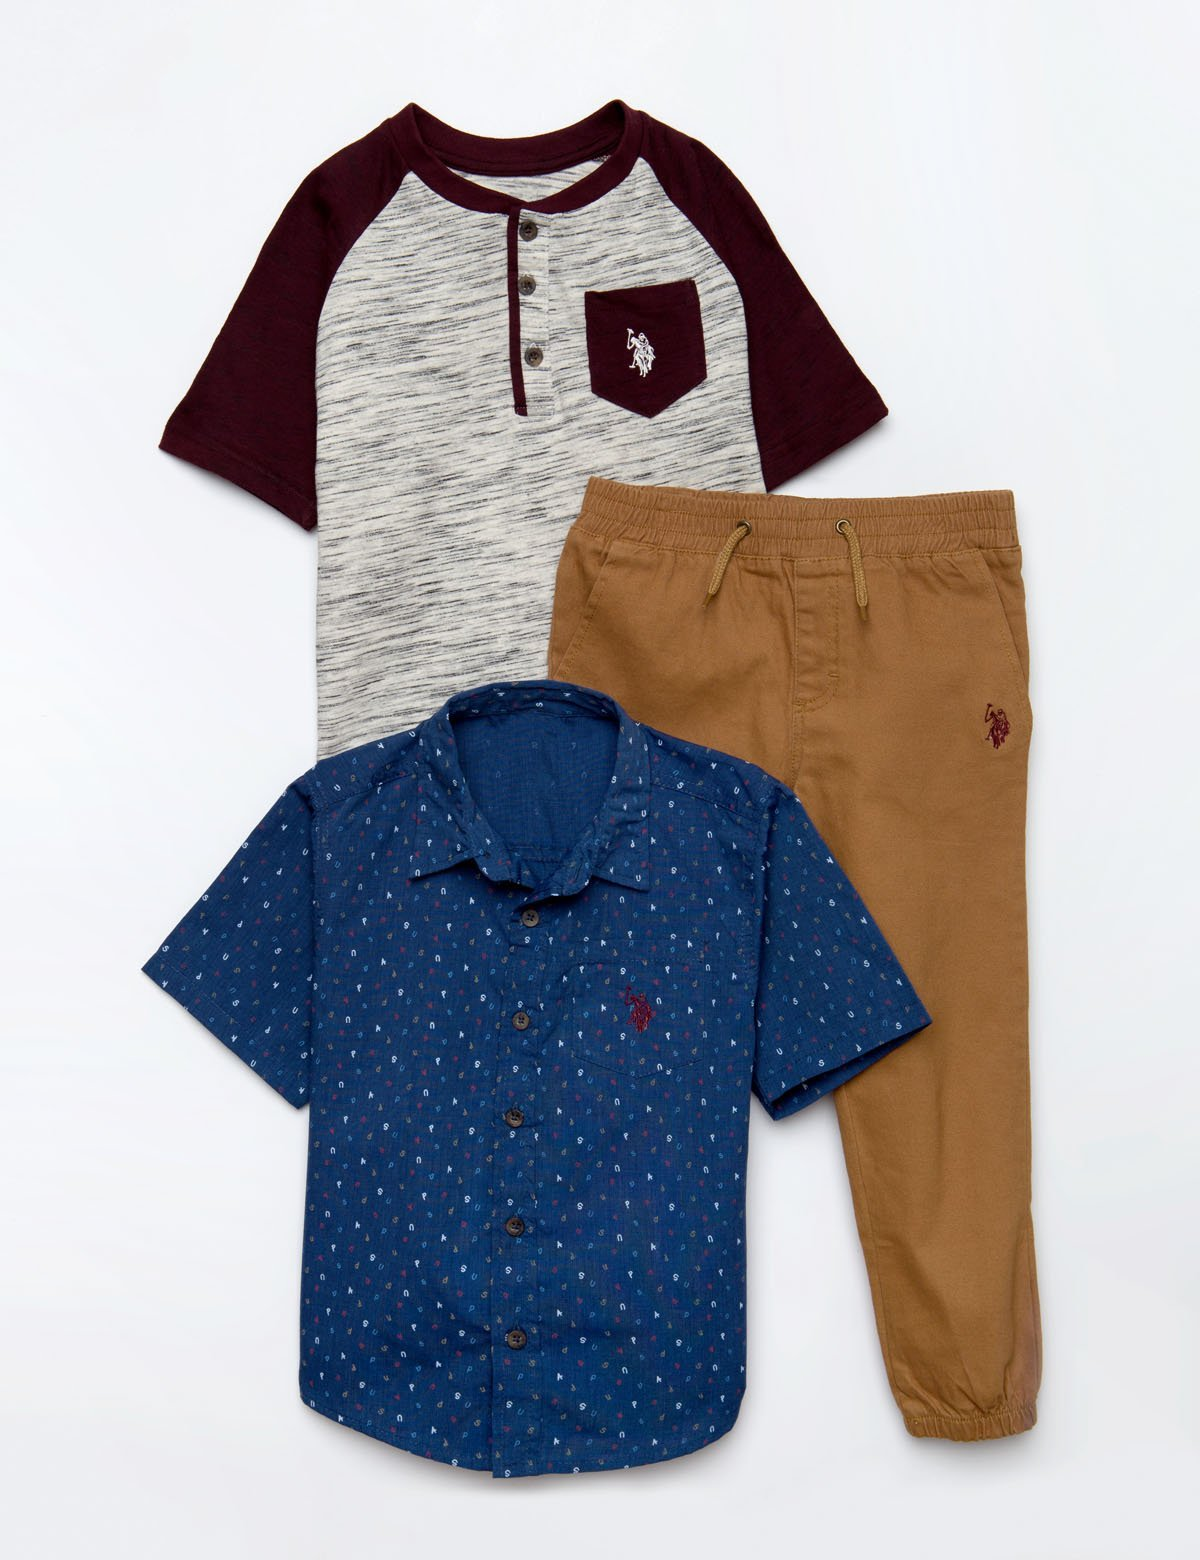 BOYS 3 PIECE SET - SHIRT, TEE & JOGGERS